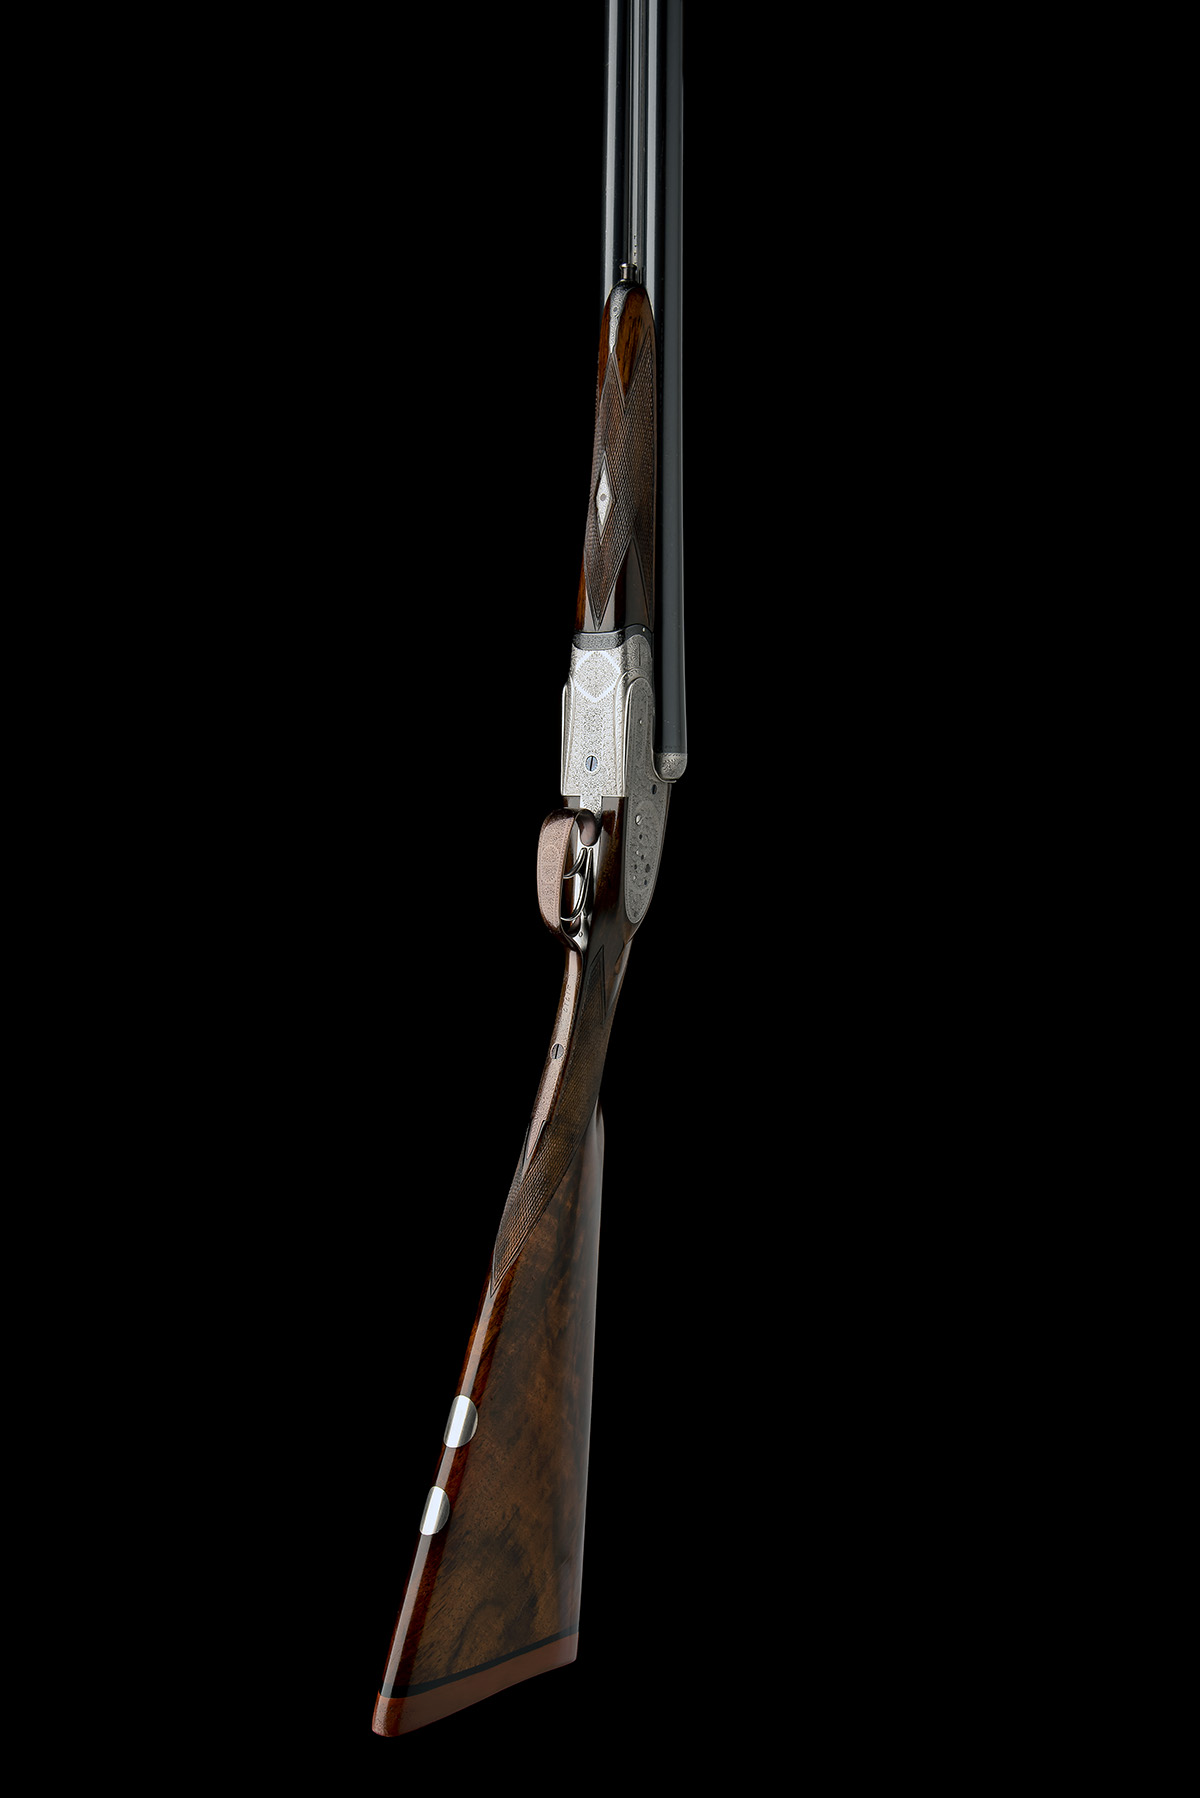 T. WILD A 12-BORE SIDELOCK EJECTOR, serial no. 21717, circa 1946, 28in. nitro reproved barrels (in - Image 6 of 8